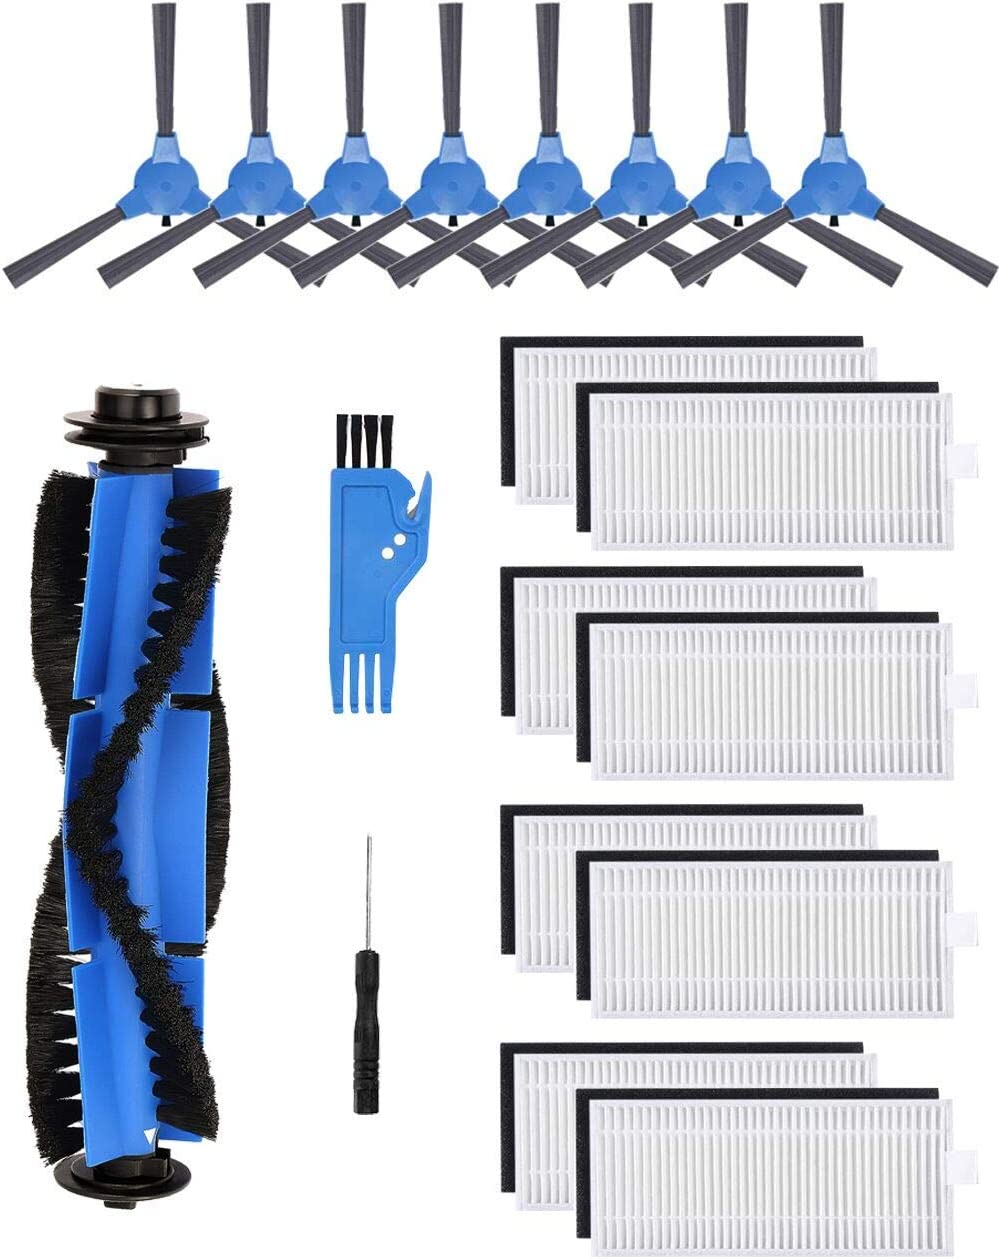 Replacement Parts for Eufy RoboVac 11S, RoboVac 30, RoboVac 30C, RoboVac 15T, RoboVac 15C, RoboVac 12, RoboVac 35C Vacuum Filters, Side Brushes,Rolling Brushes